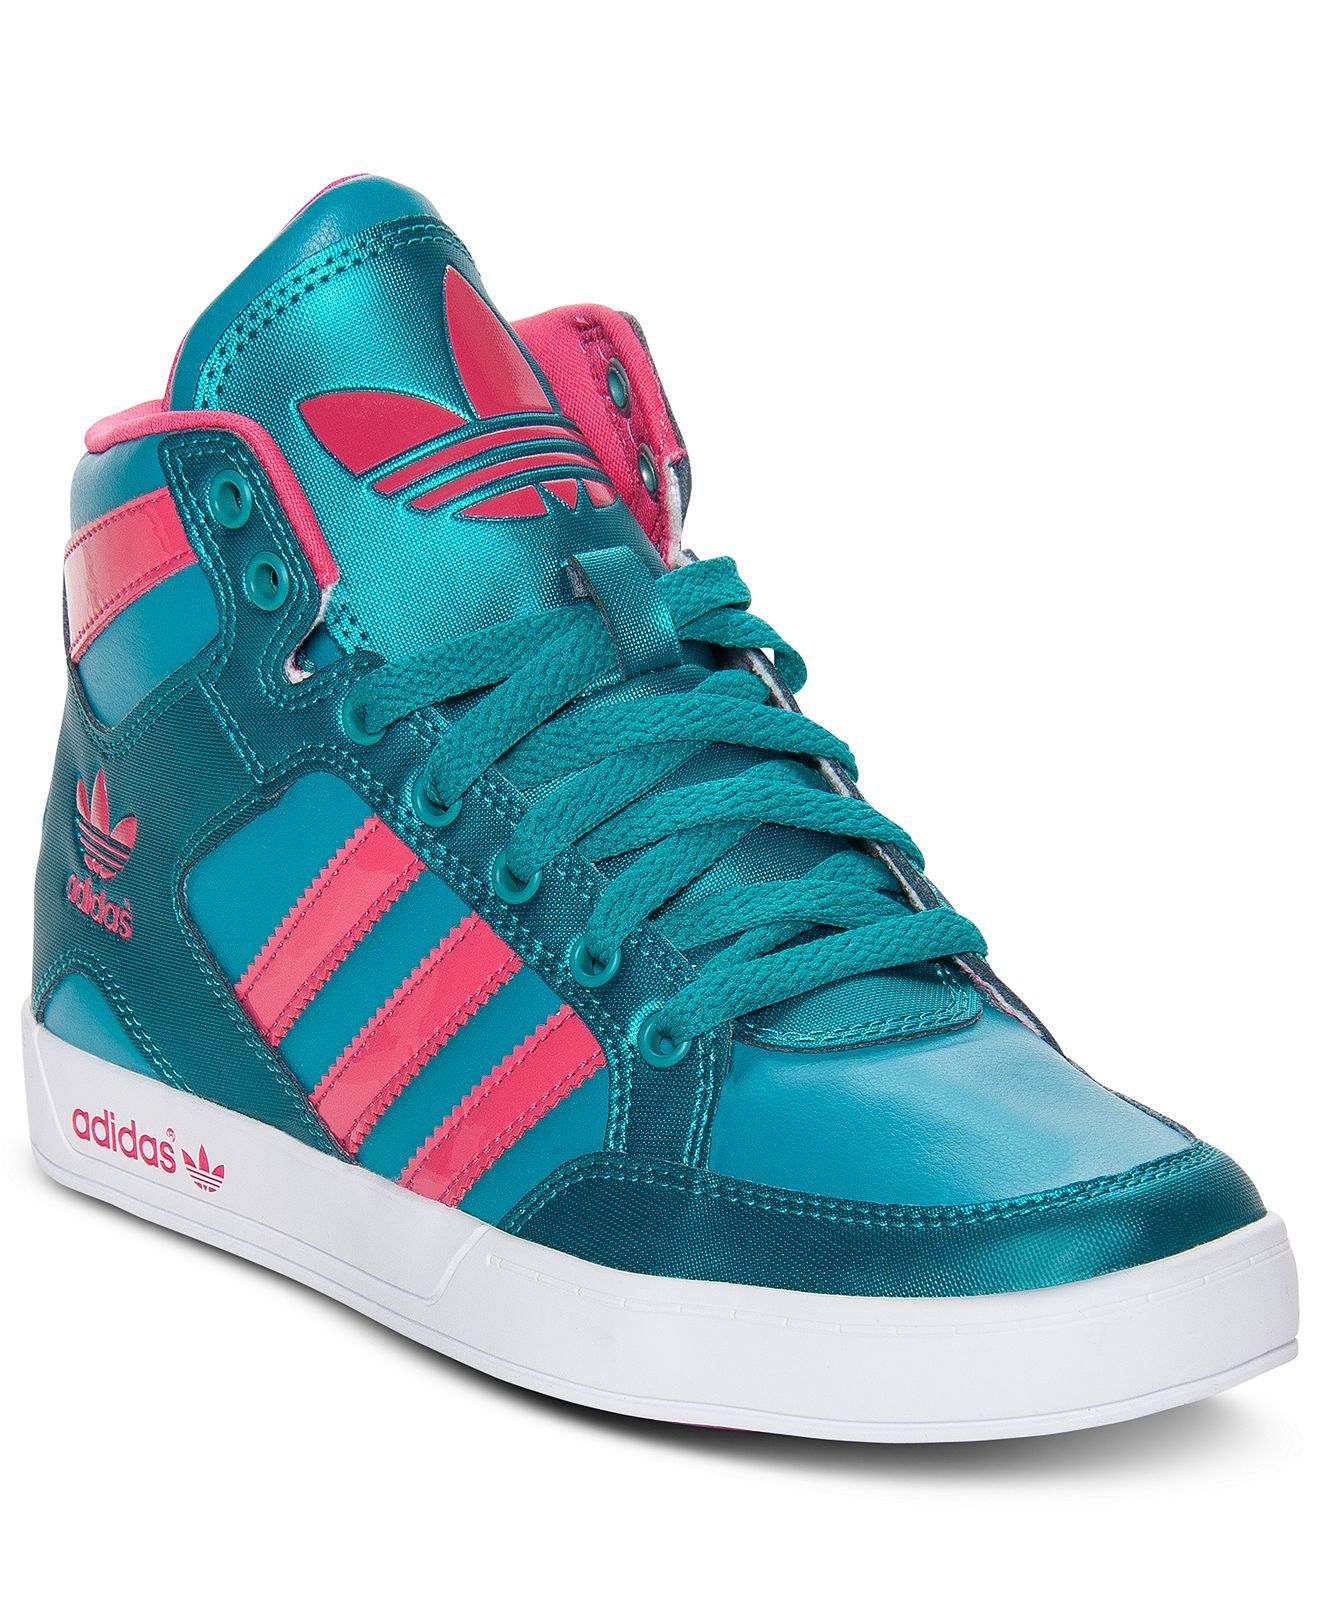 adidas Women s Shoes 12da0afbbf